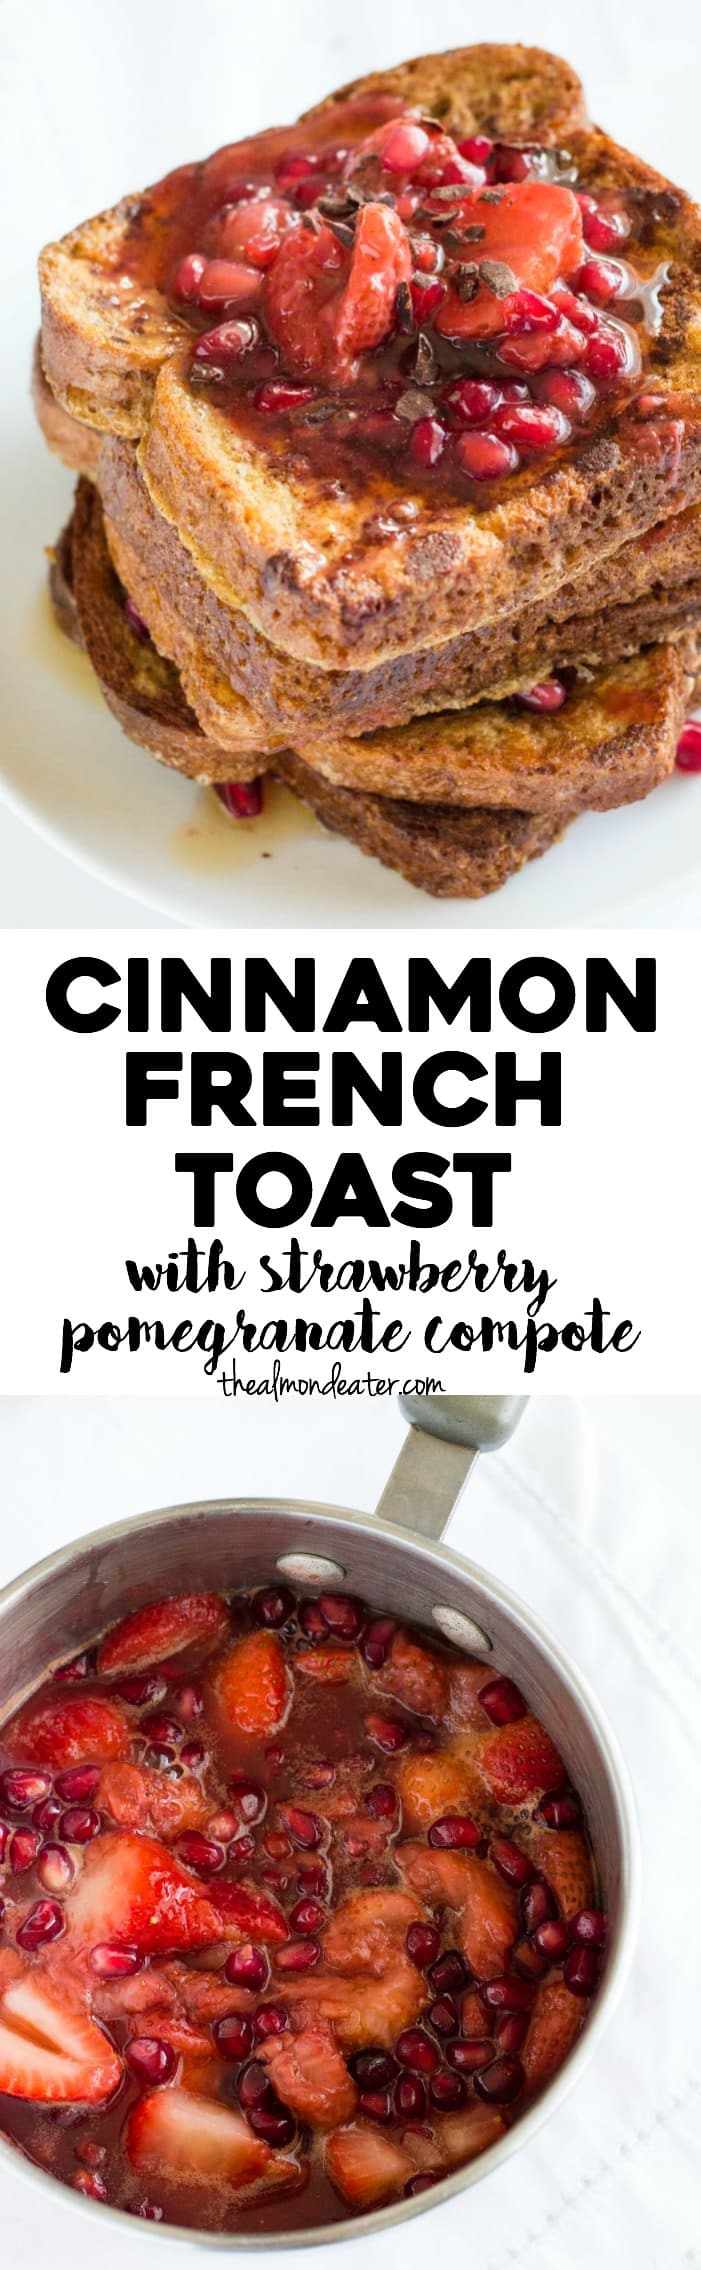 Simple Cinnamon French Toast topped with a fruity strawberry pomegranate compote. 8 ingredients and 15 minutes! | thealmondeater.com